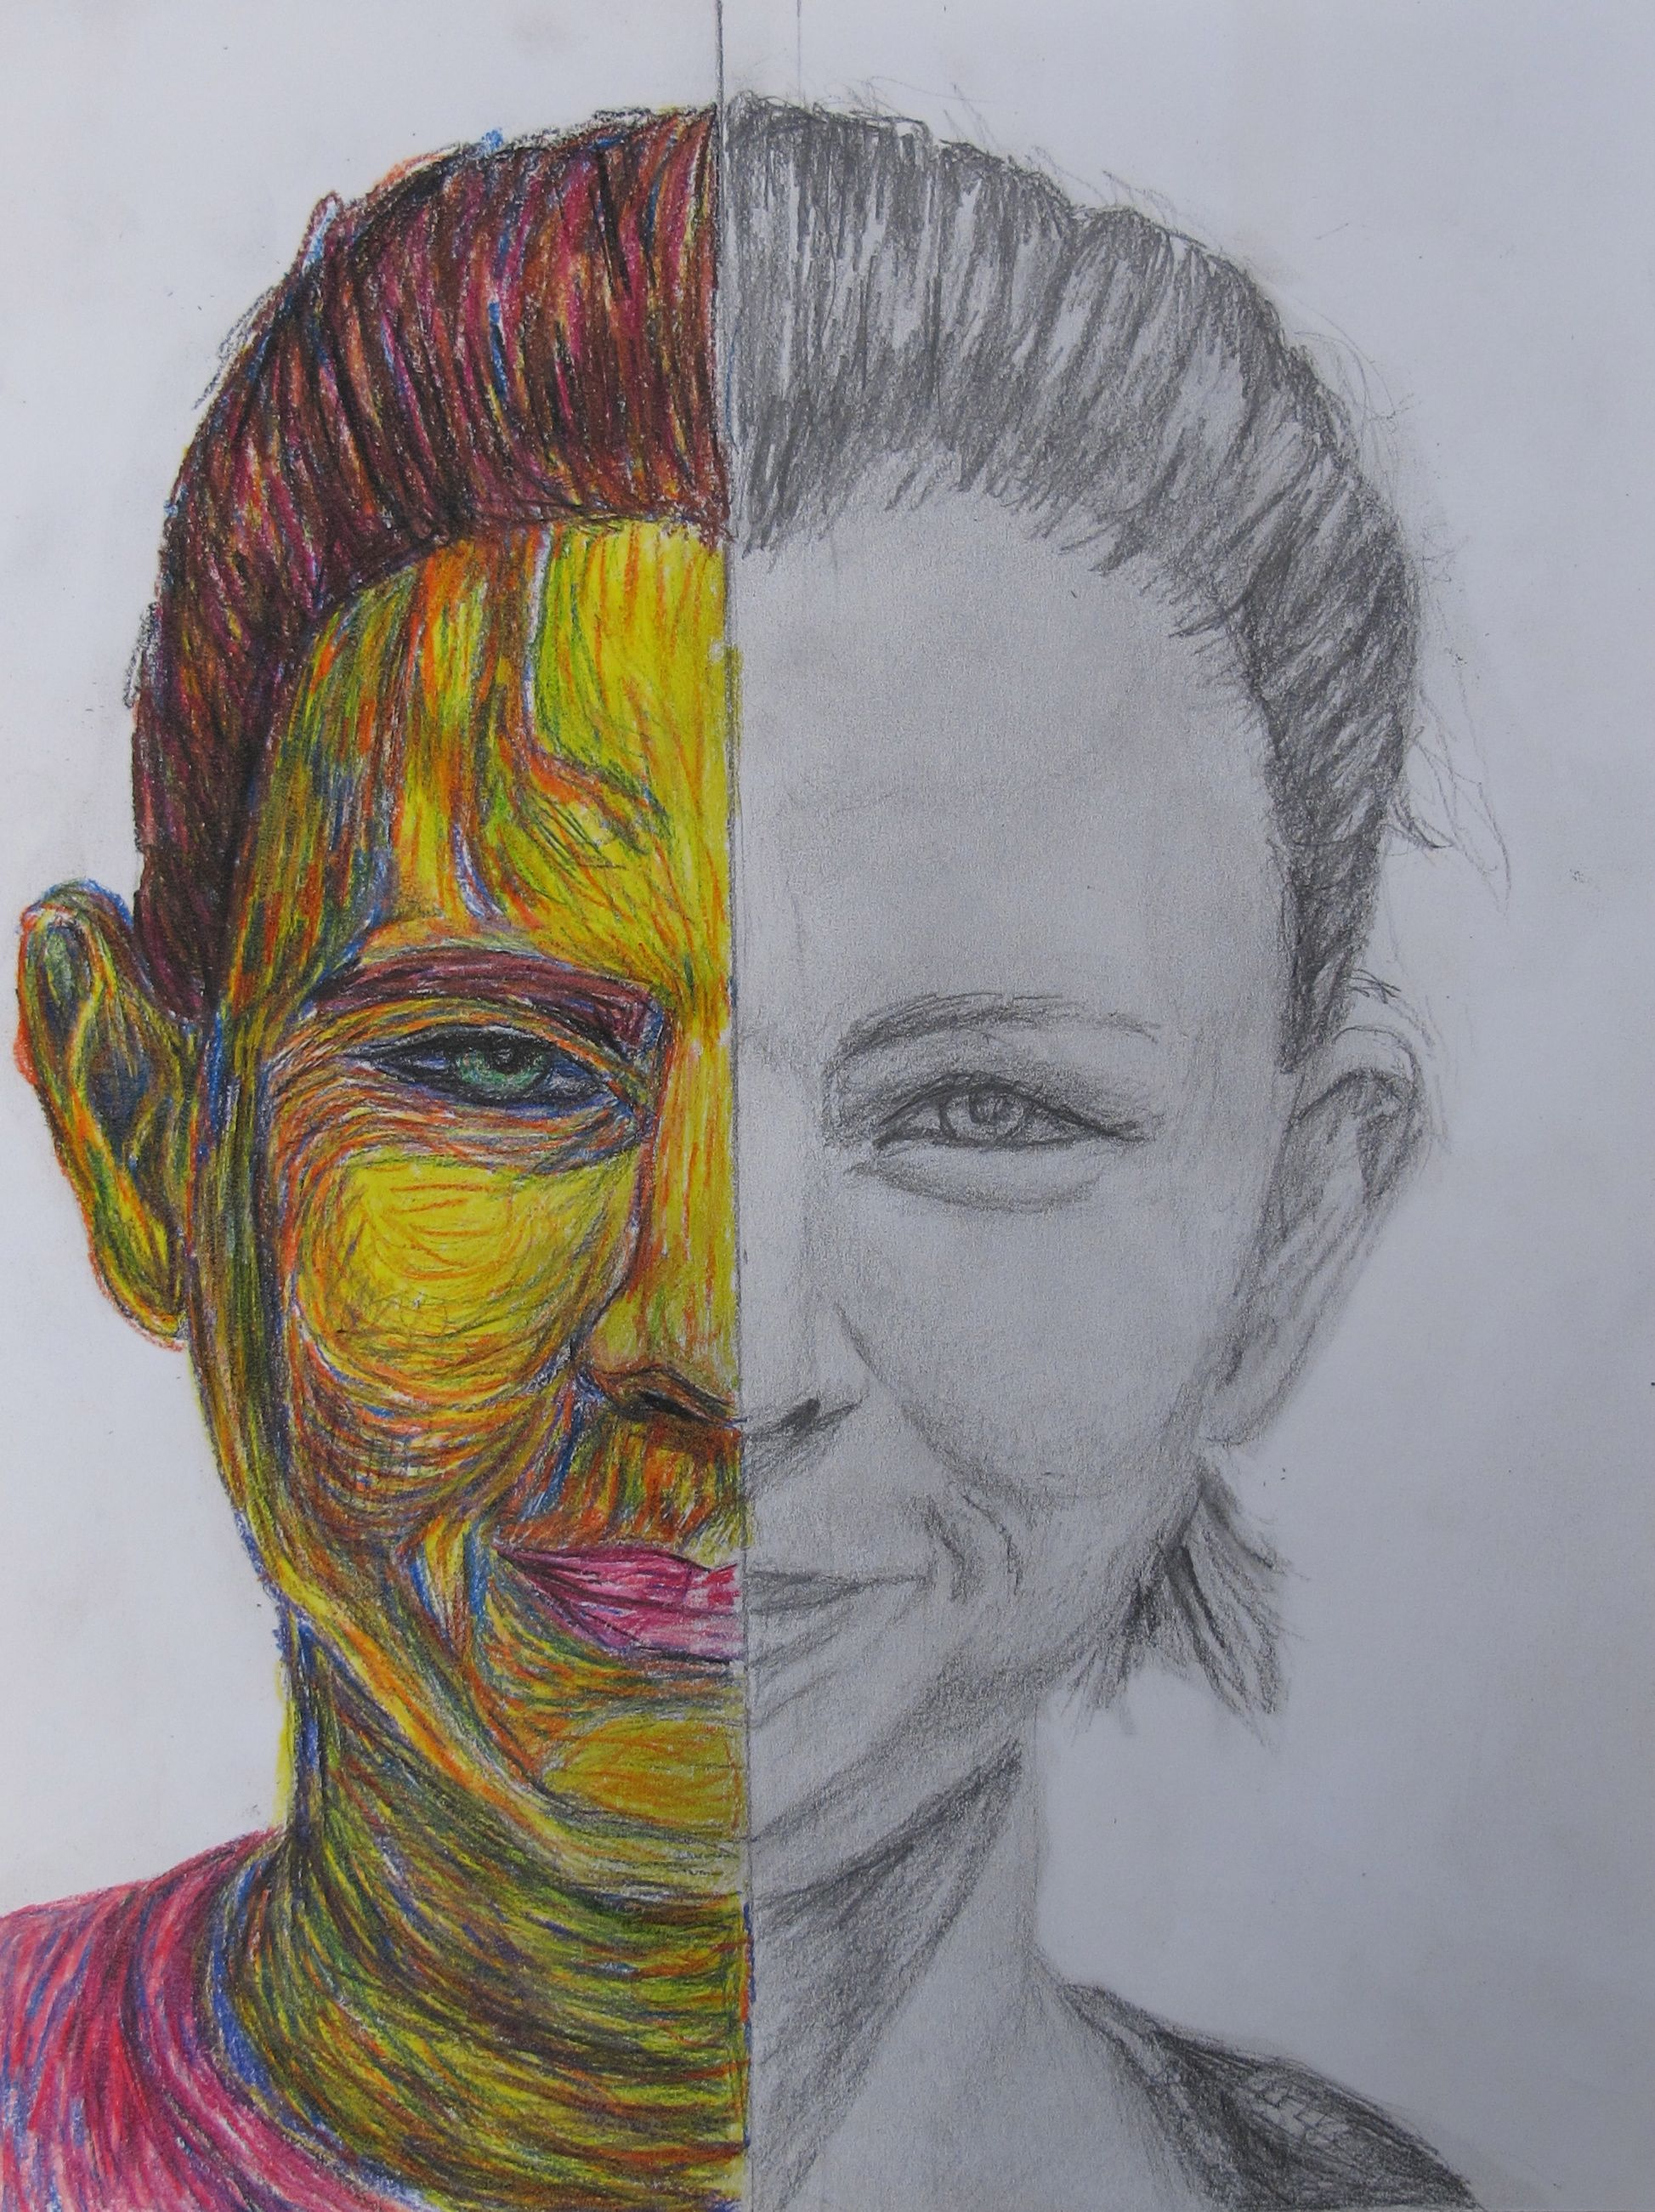 Half And Half Self Portrait Draw One Half Of Your Face In Just Pencil Color The Other Half Of